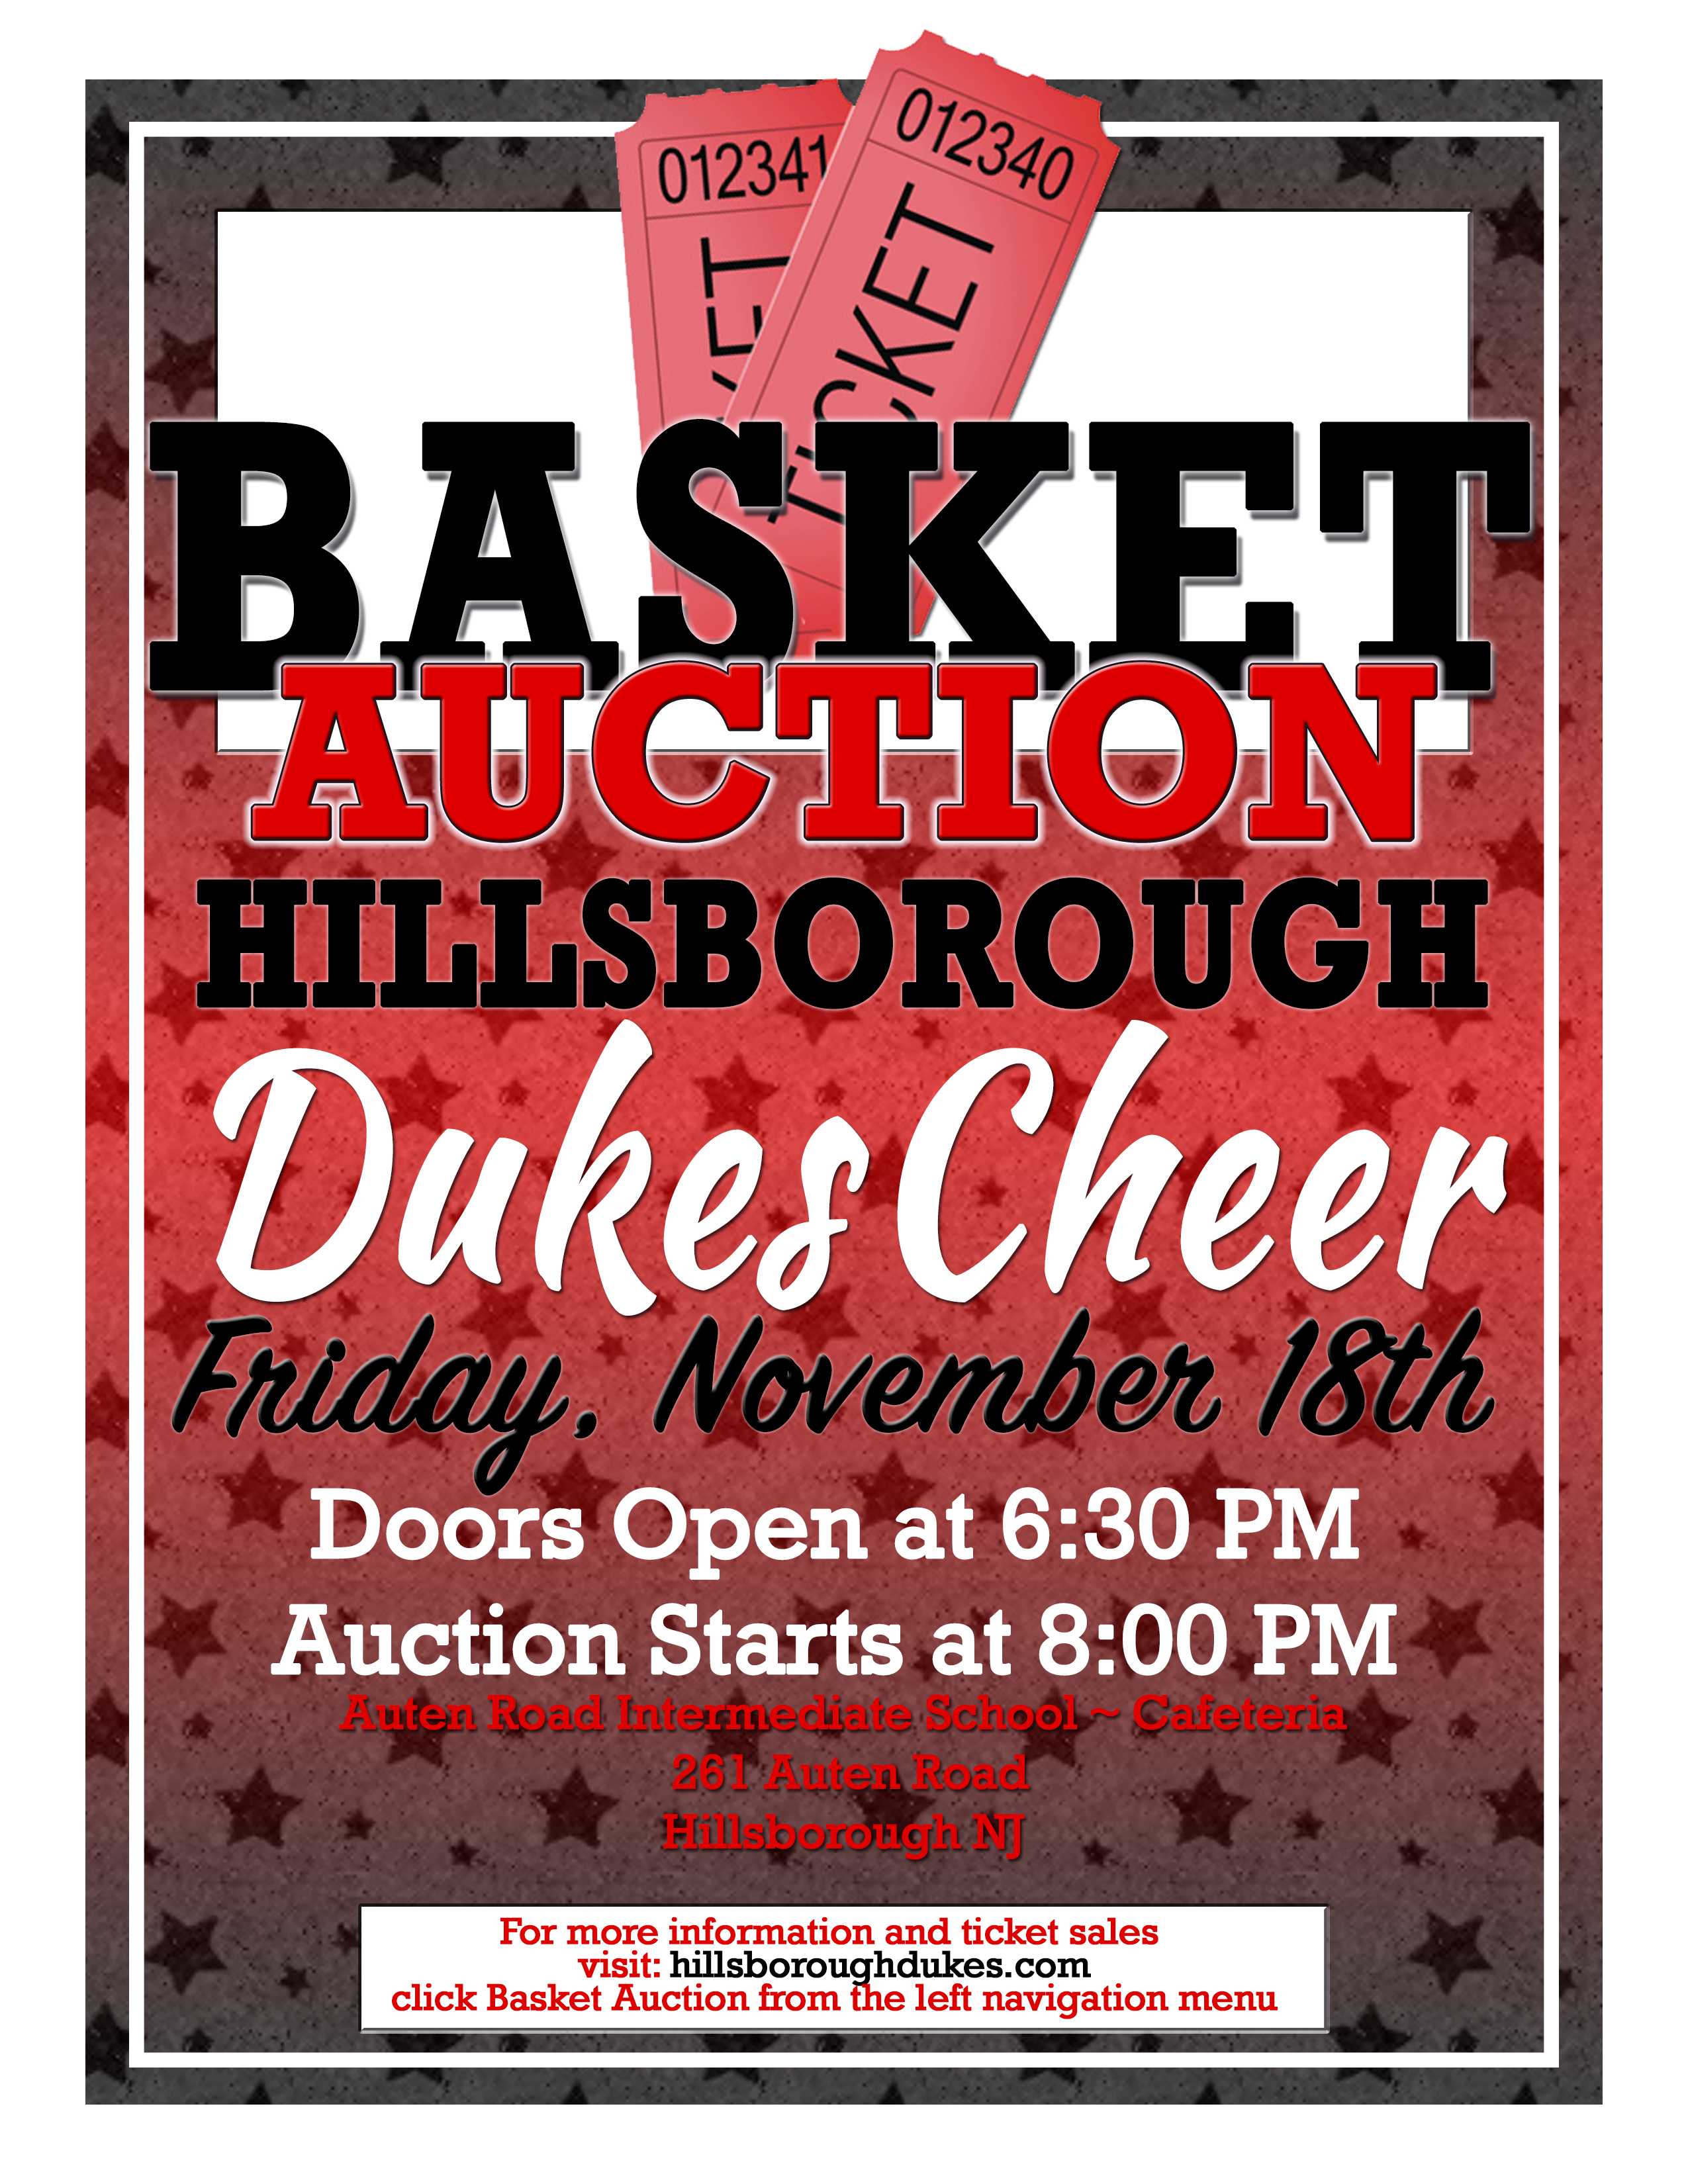 Dukes Cheer Basket Auction